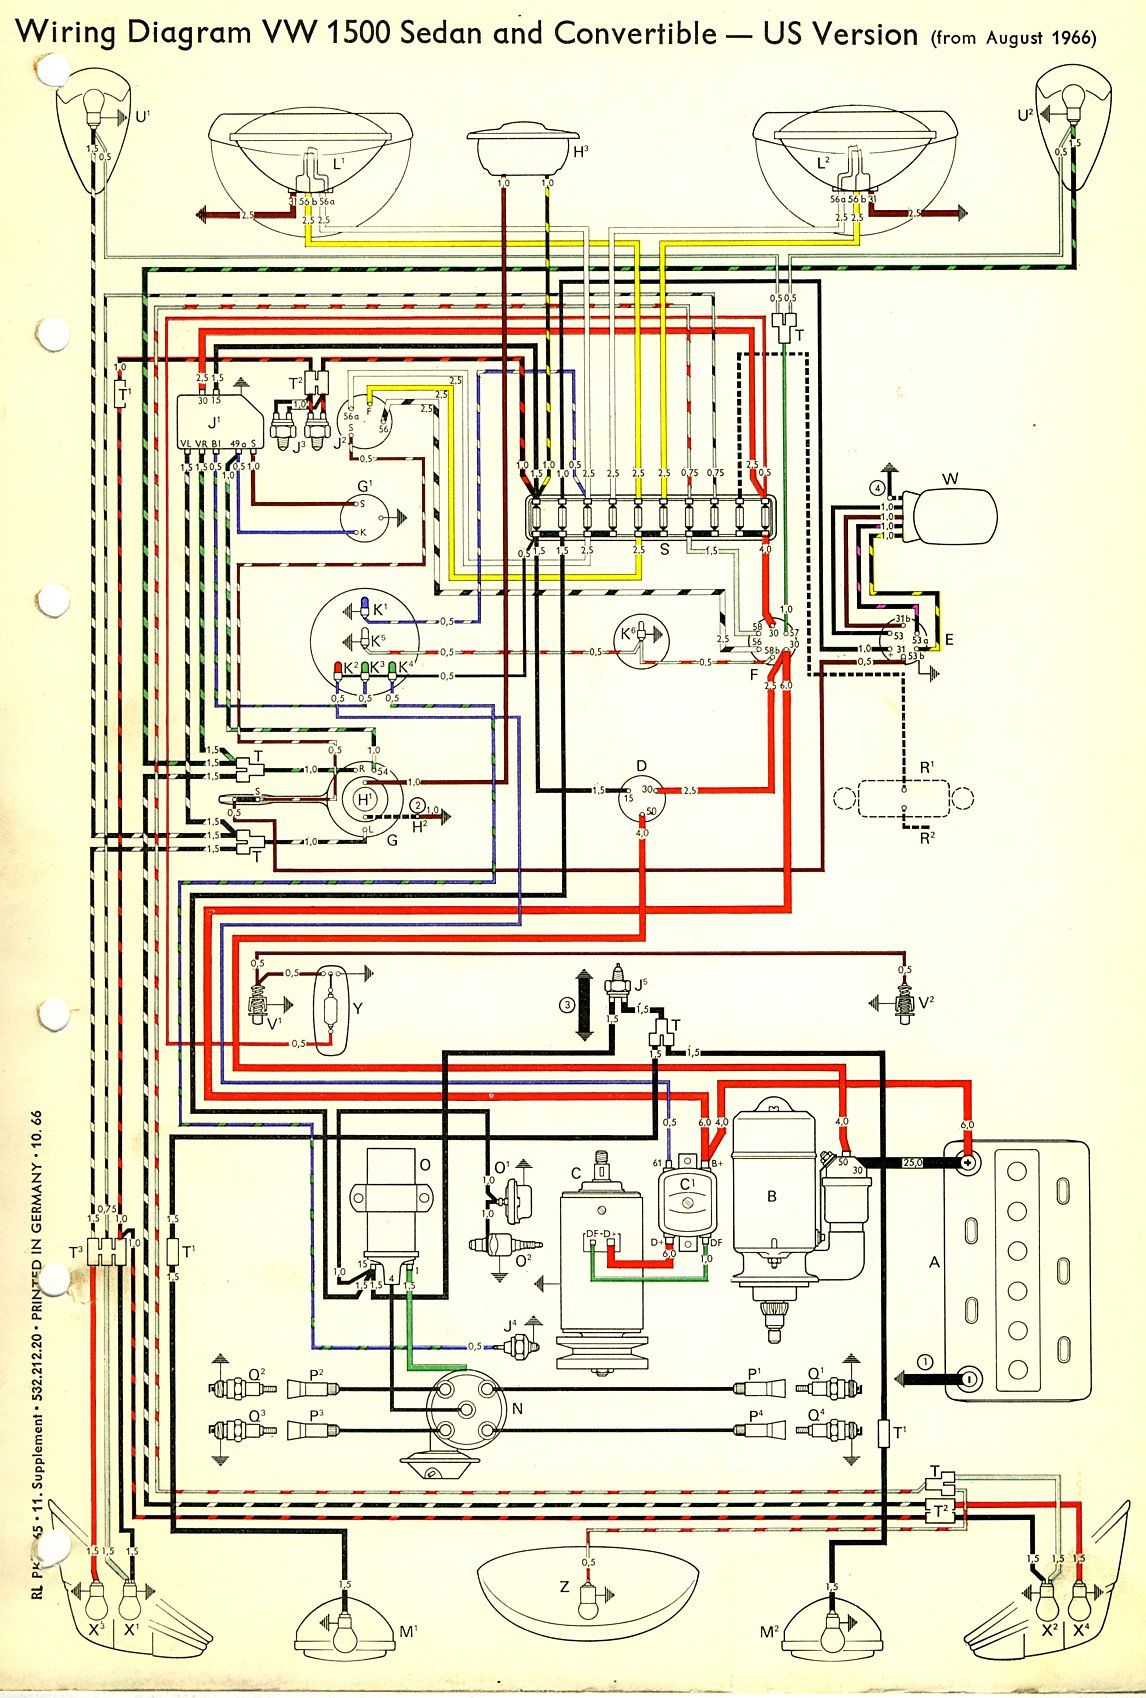 1adf990c0efb617c789fdd21338448b0 1967 beetle wiring diagram (usa) thegoldenbug com best 1967 vw vw wiring diagrams at cita.asia